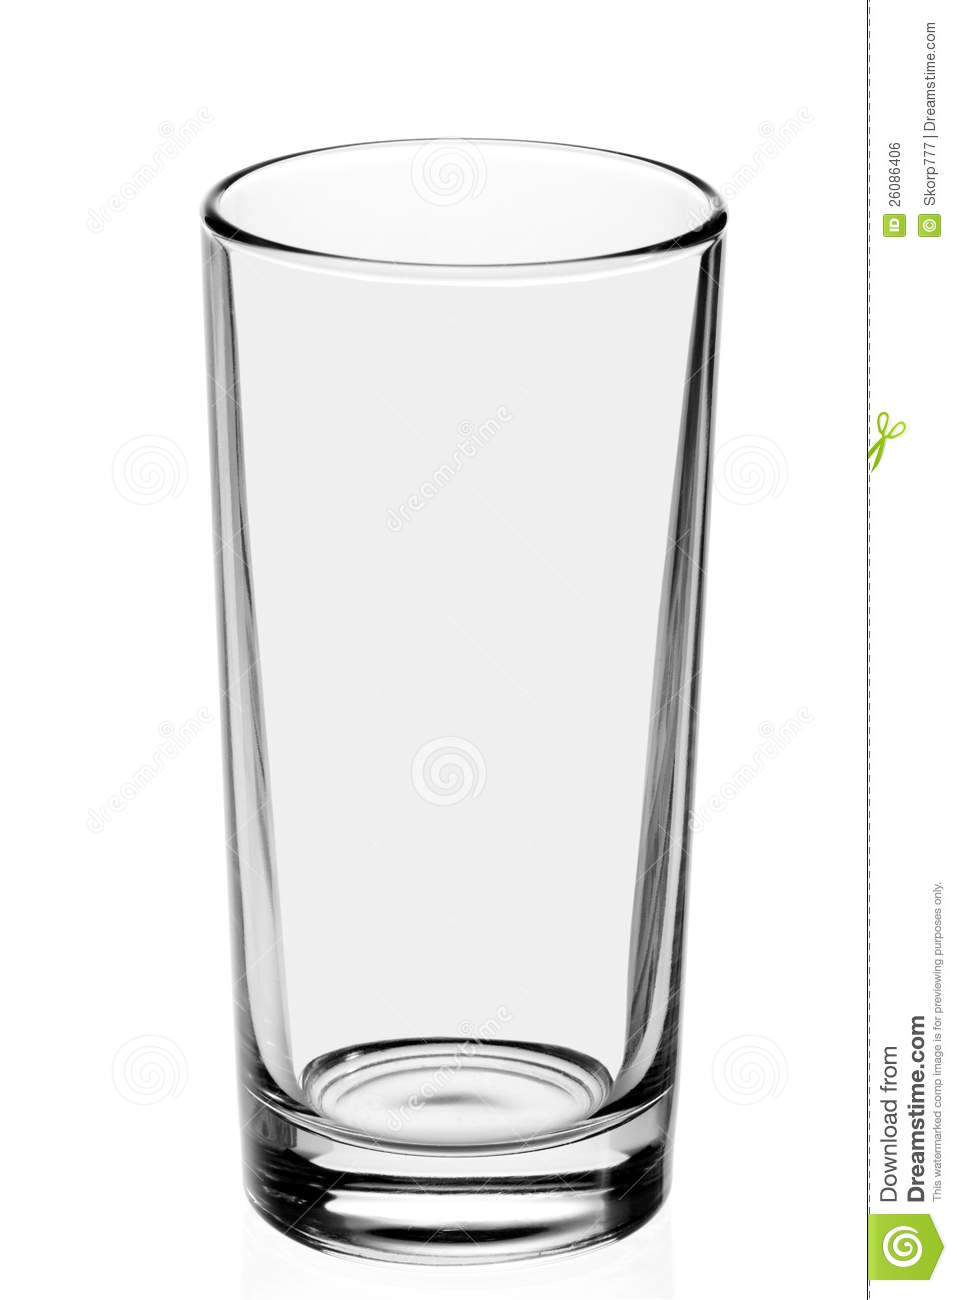 On the white panda. Glass clipart empty glass